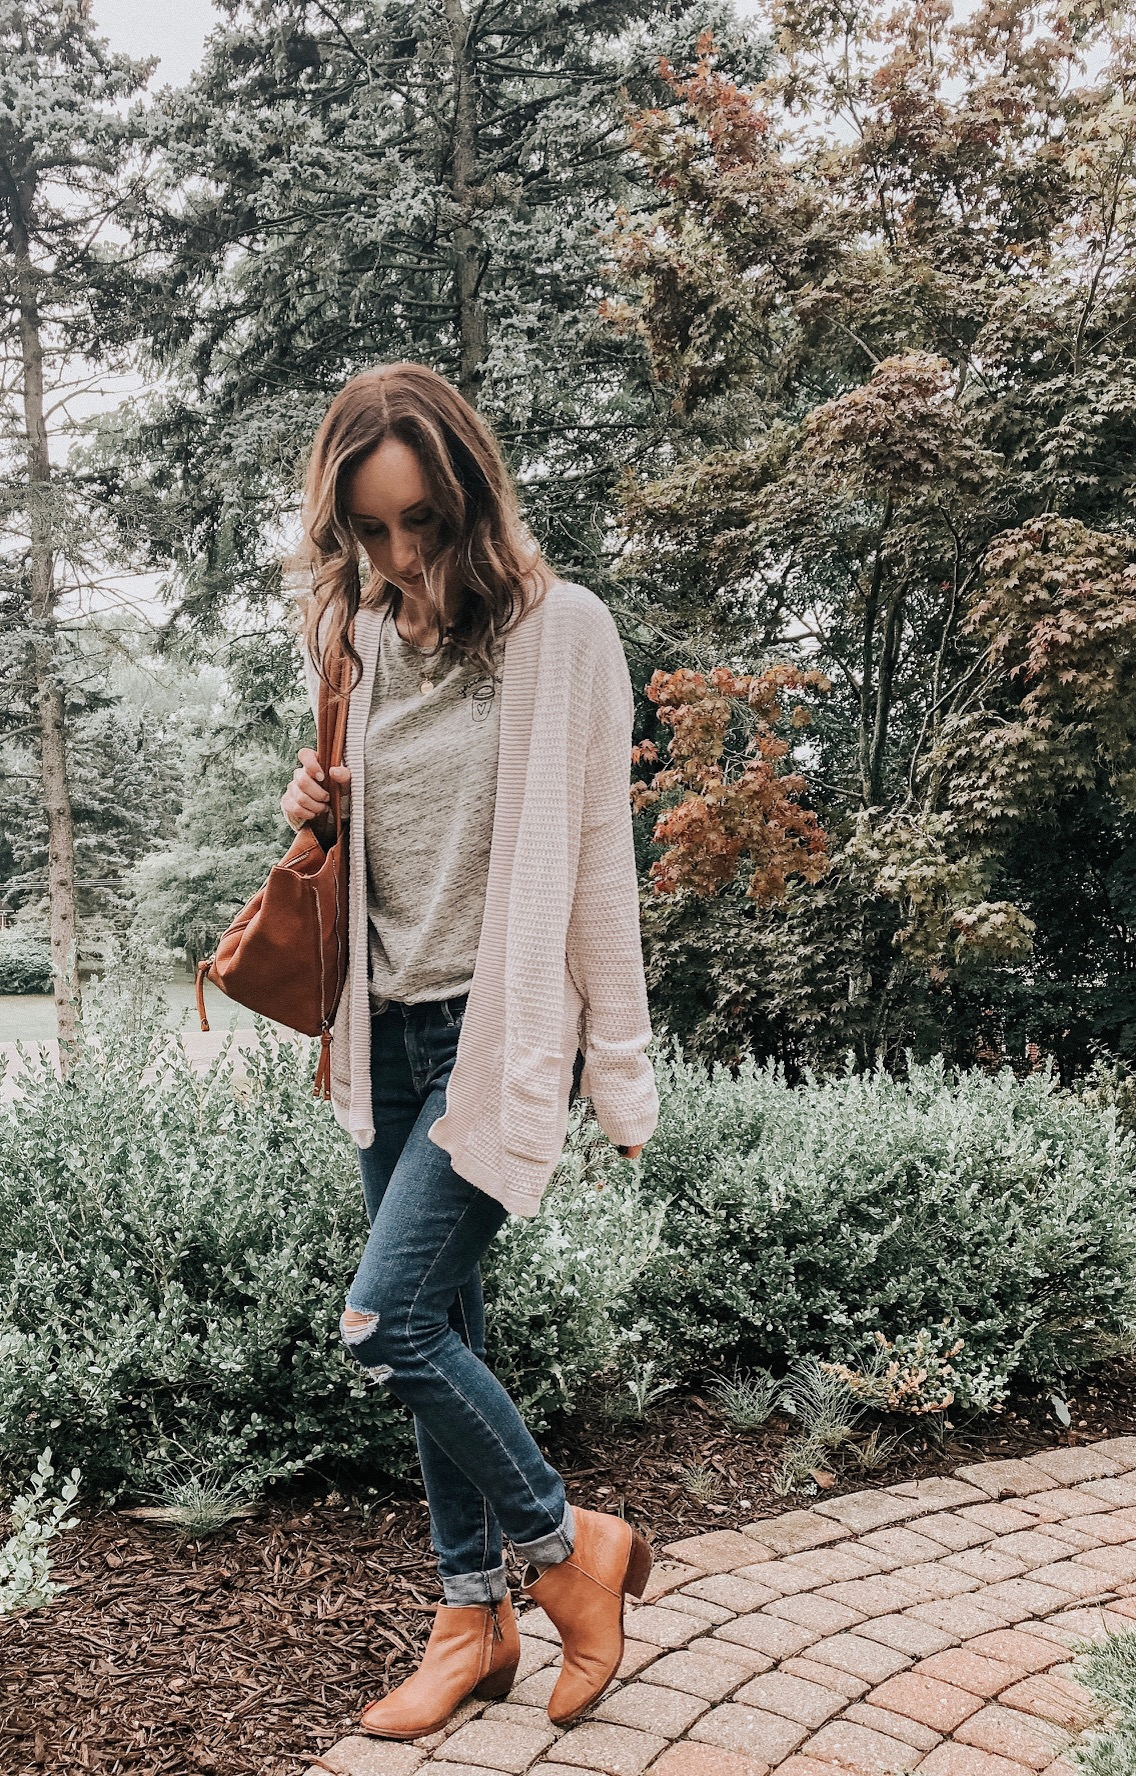 Fall Instagram Favorites | Daily Splendor Life and Style Blog | distressed denim, sweater, booties, tote bag #casualstyle #casualoutfit #momstyle #everydayfashion #fallstyle #fallneutrals